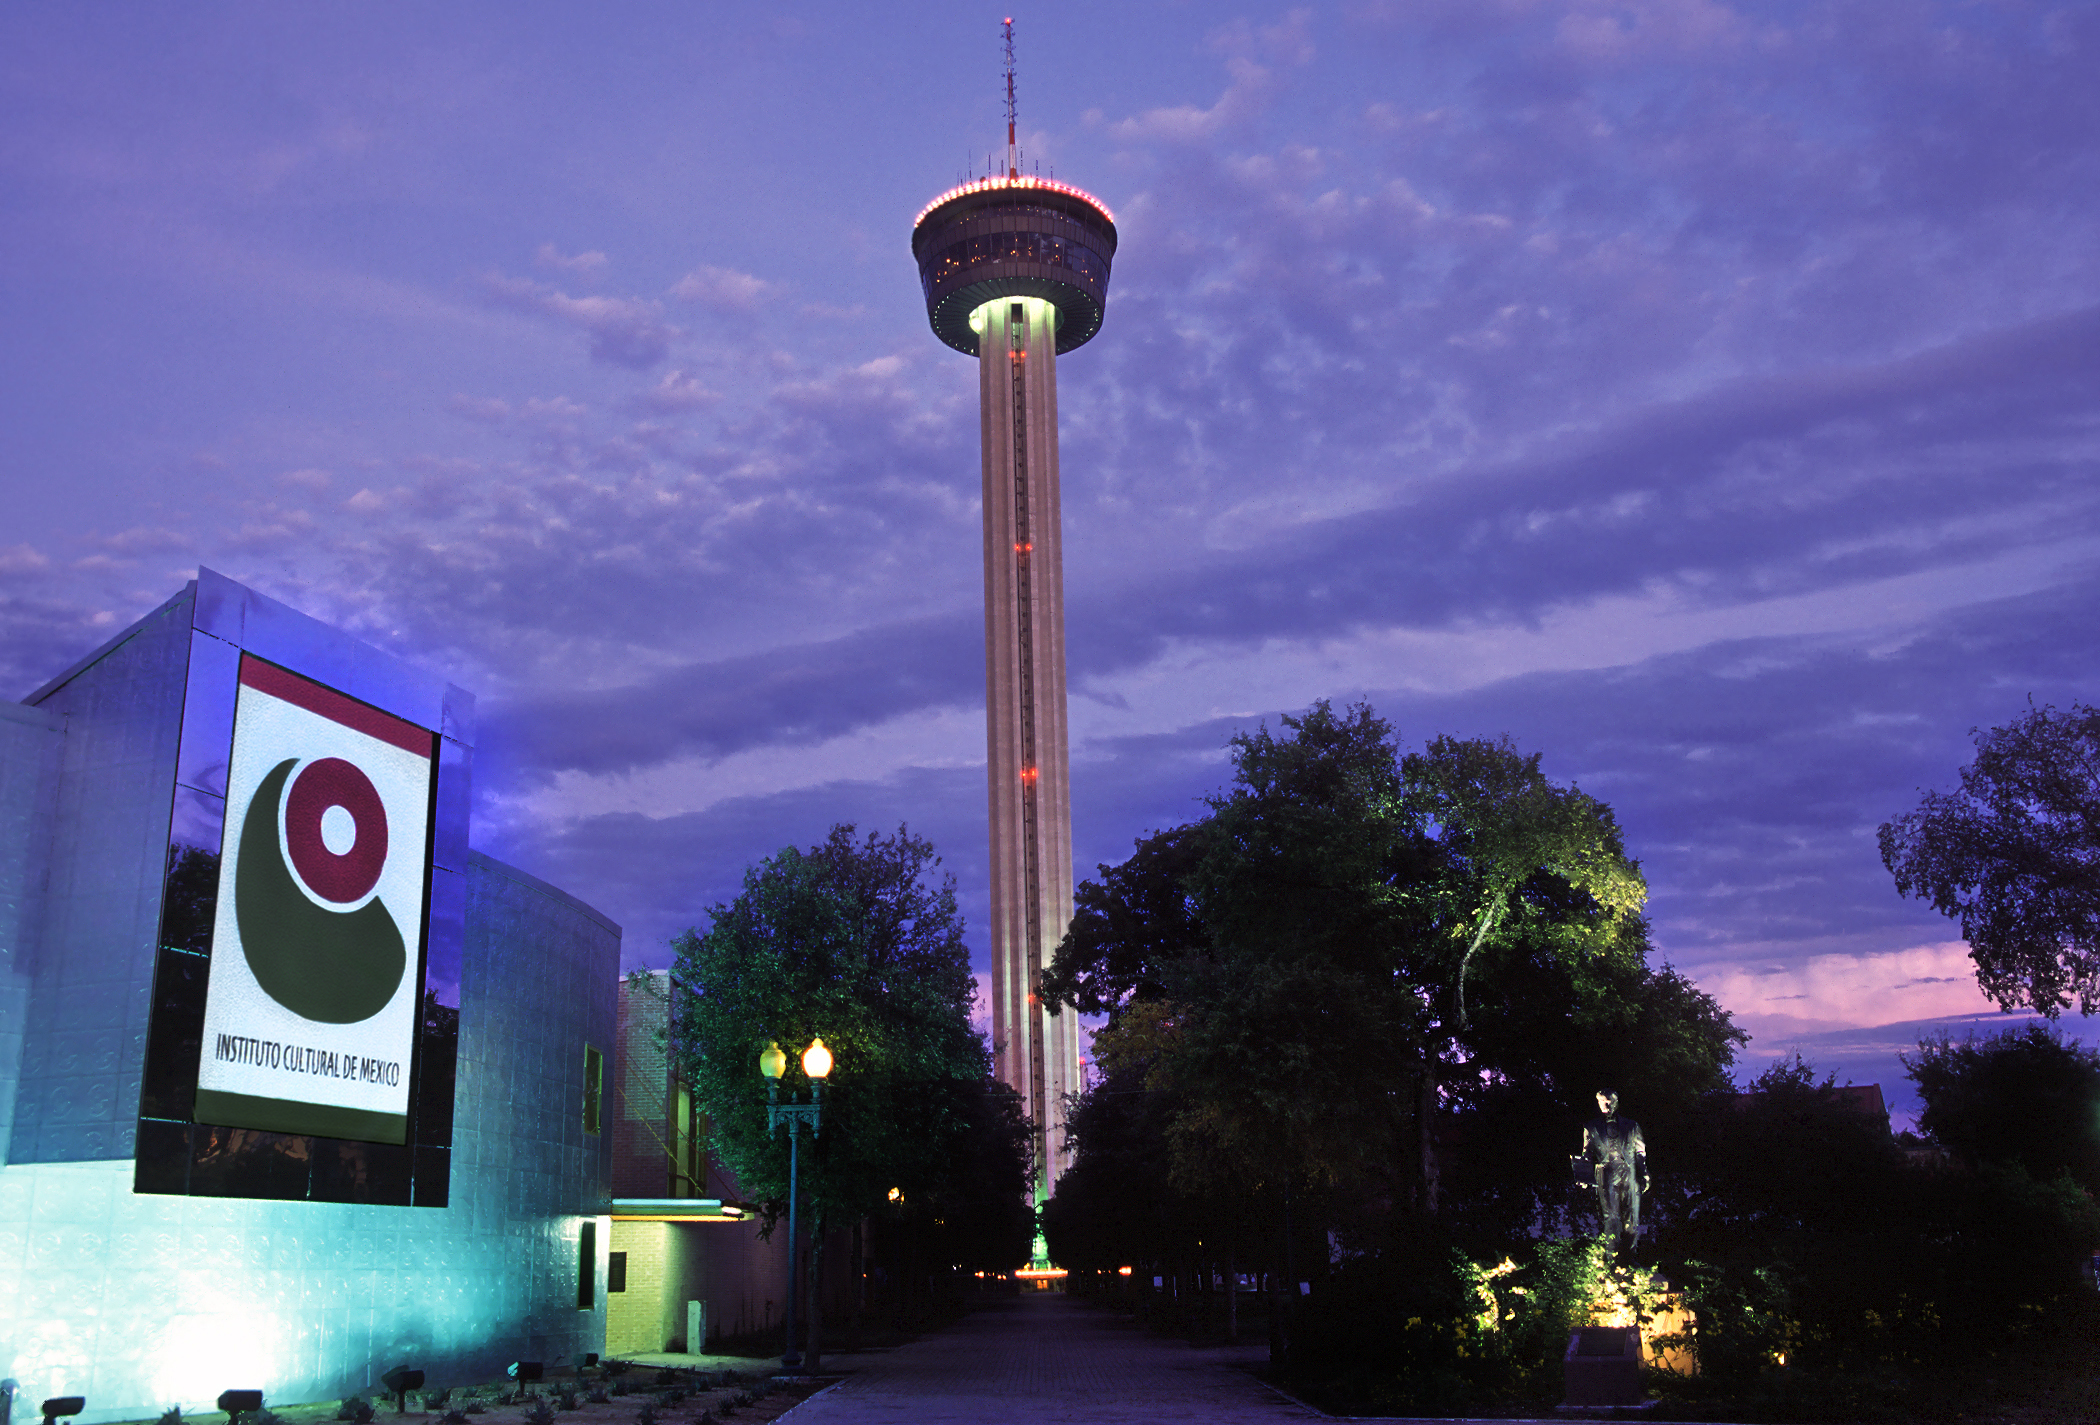 Tower of Americas and Instituto Cultural de Mexico- photo by Al Rendon